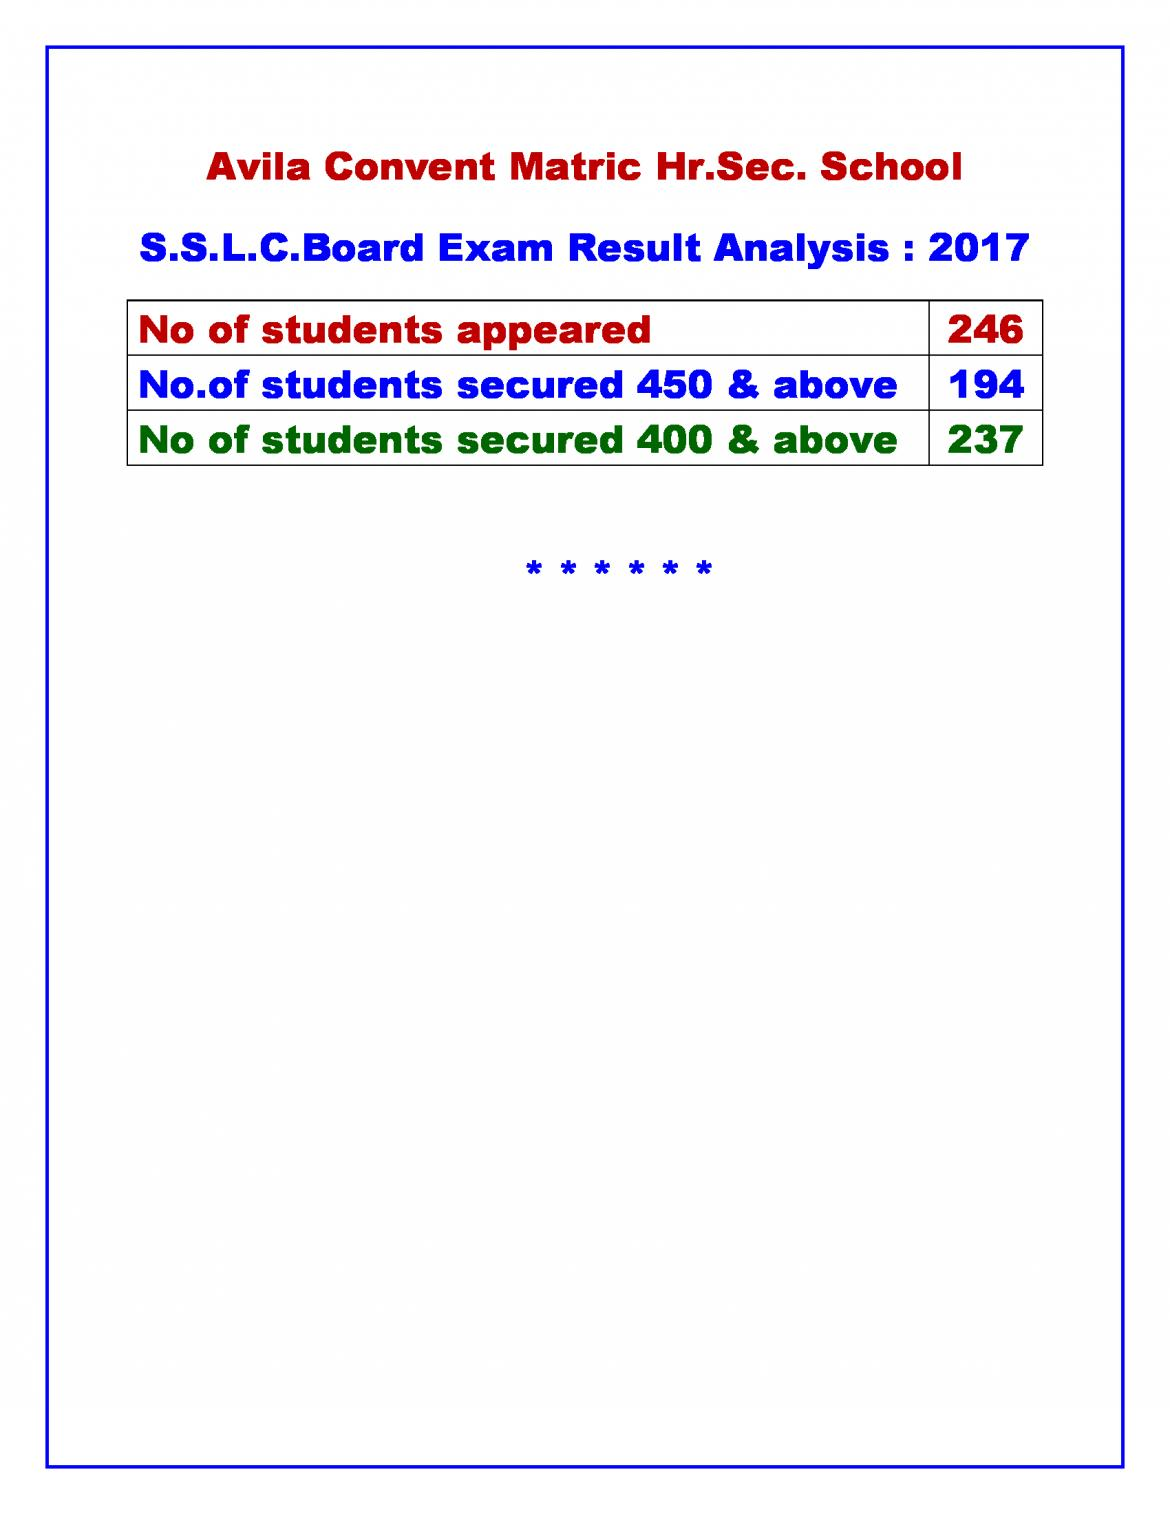 S.S.L.C.BOARD EXAM RESULT : 2017